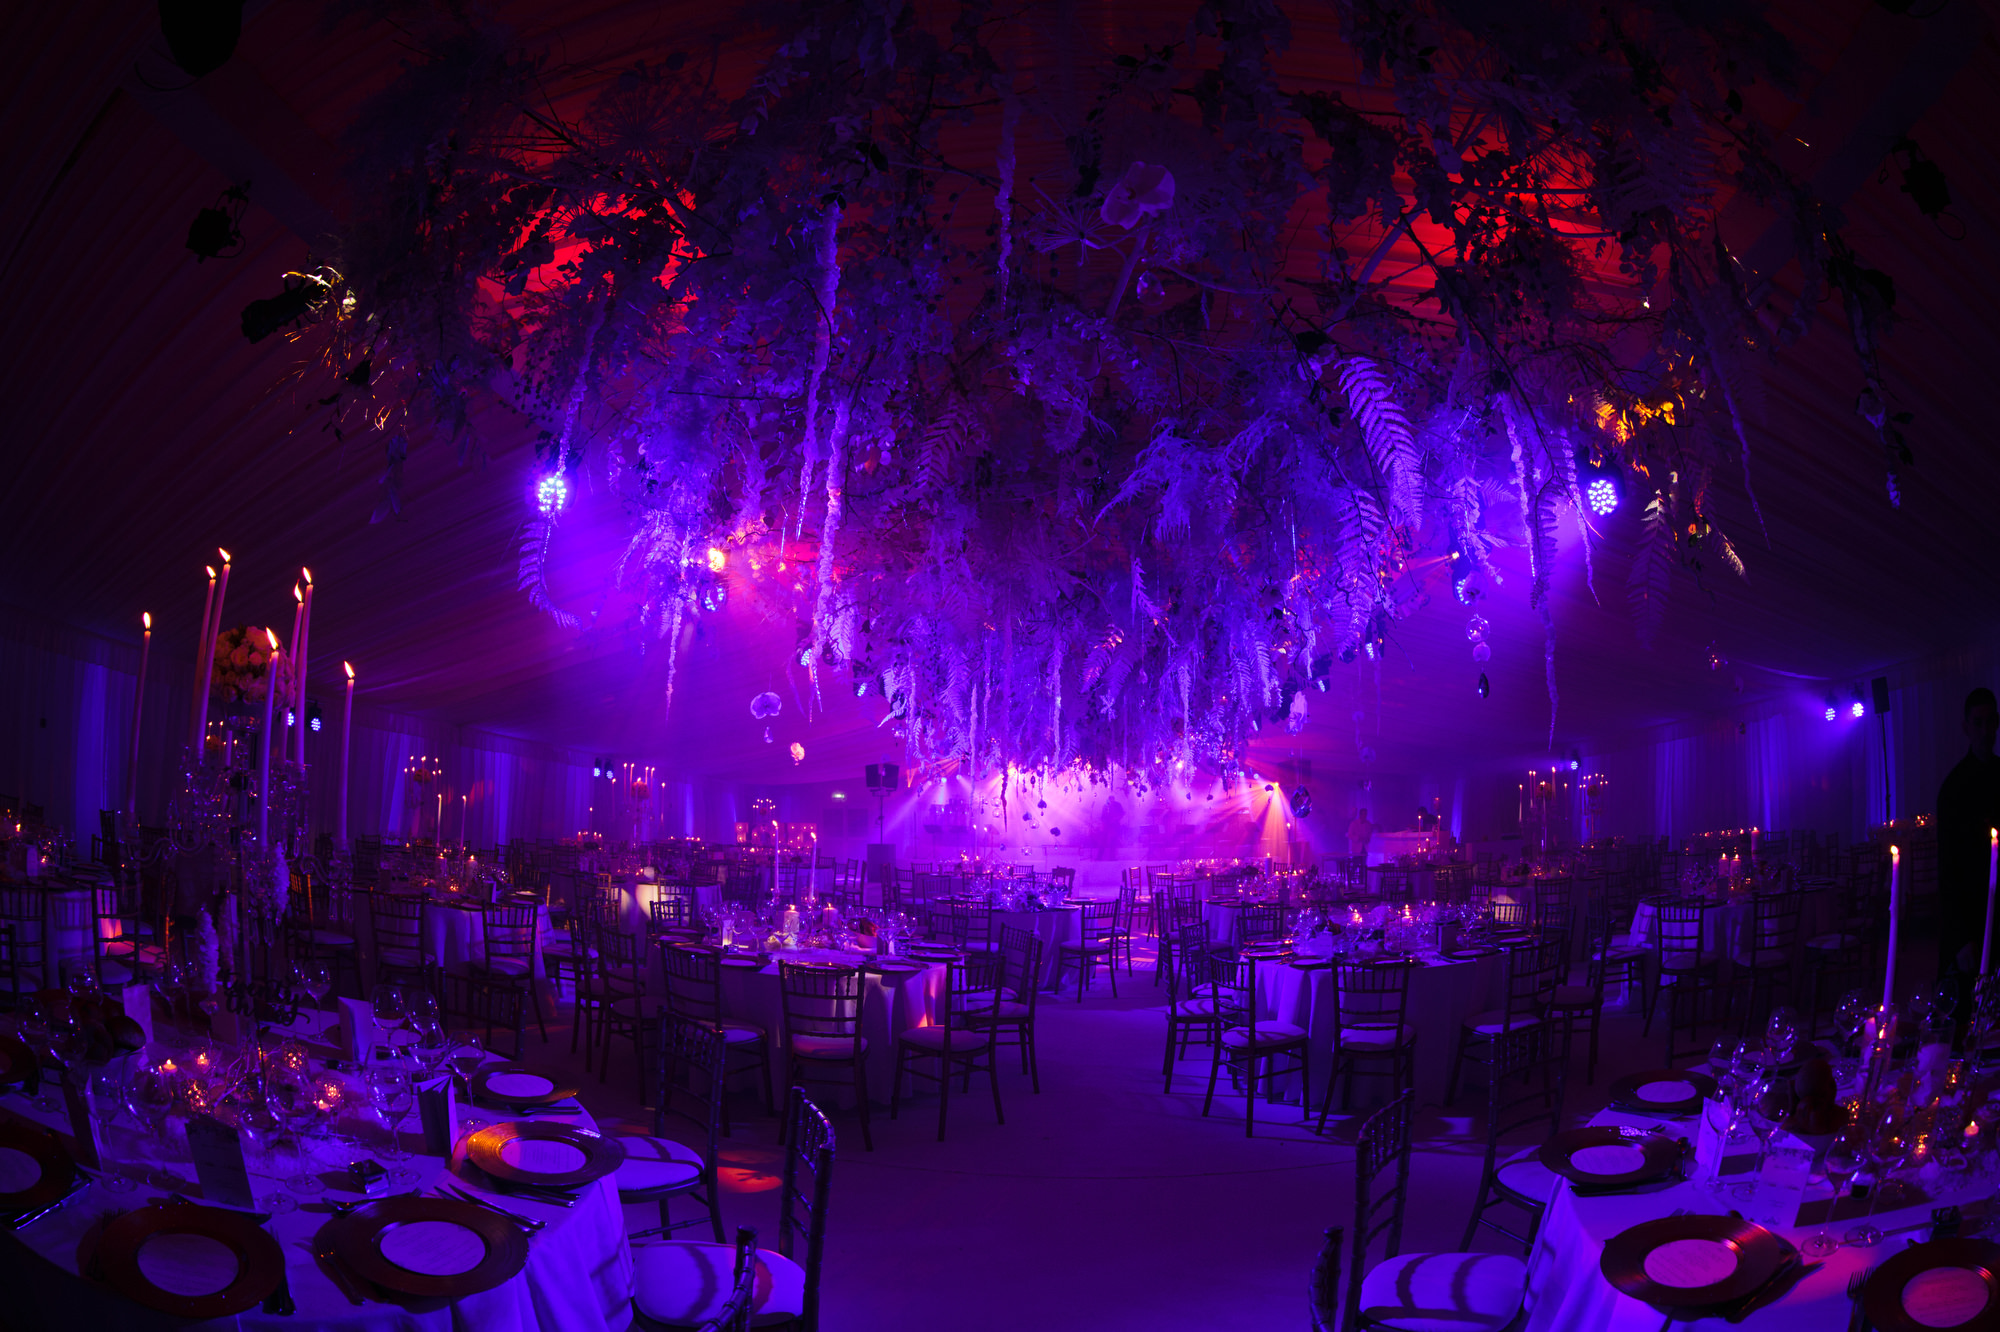 Red and purple lit reception hall at Rudding Park Hotel - photo by Jeff Ascough